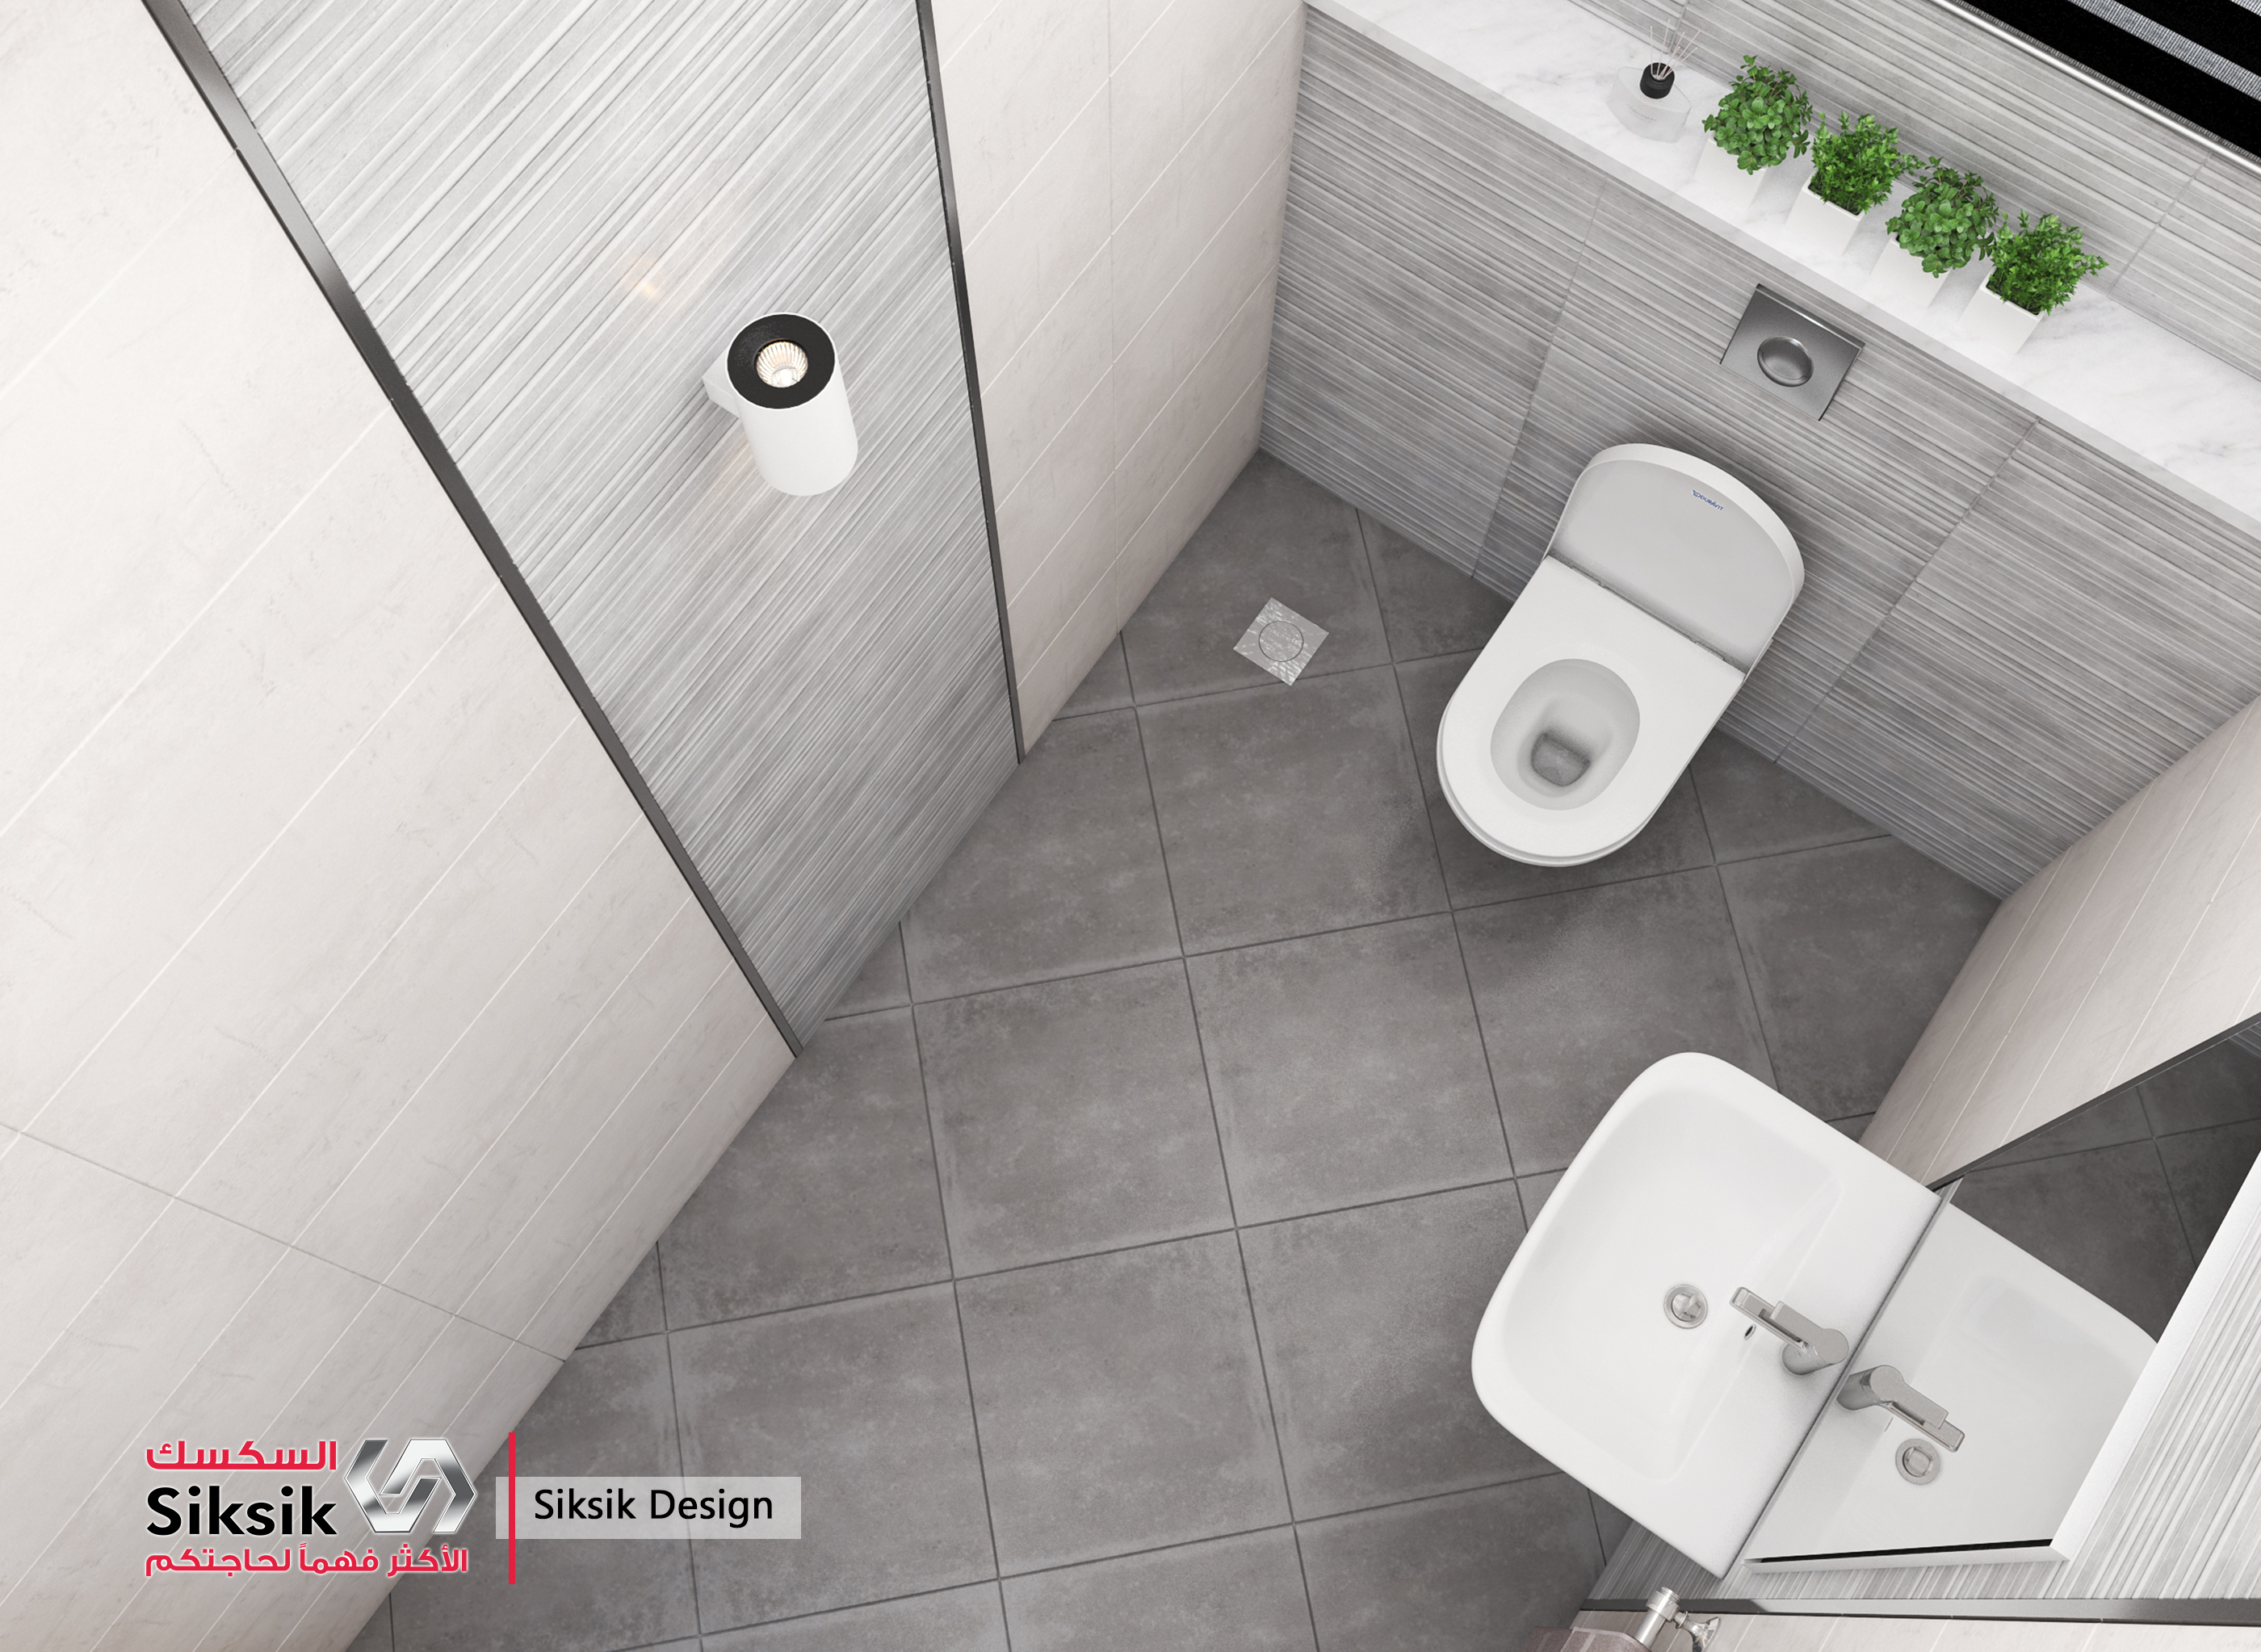 Designs And Models For Bathrooms Bashir Siksik Company Toilet Paper Design Bathroom